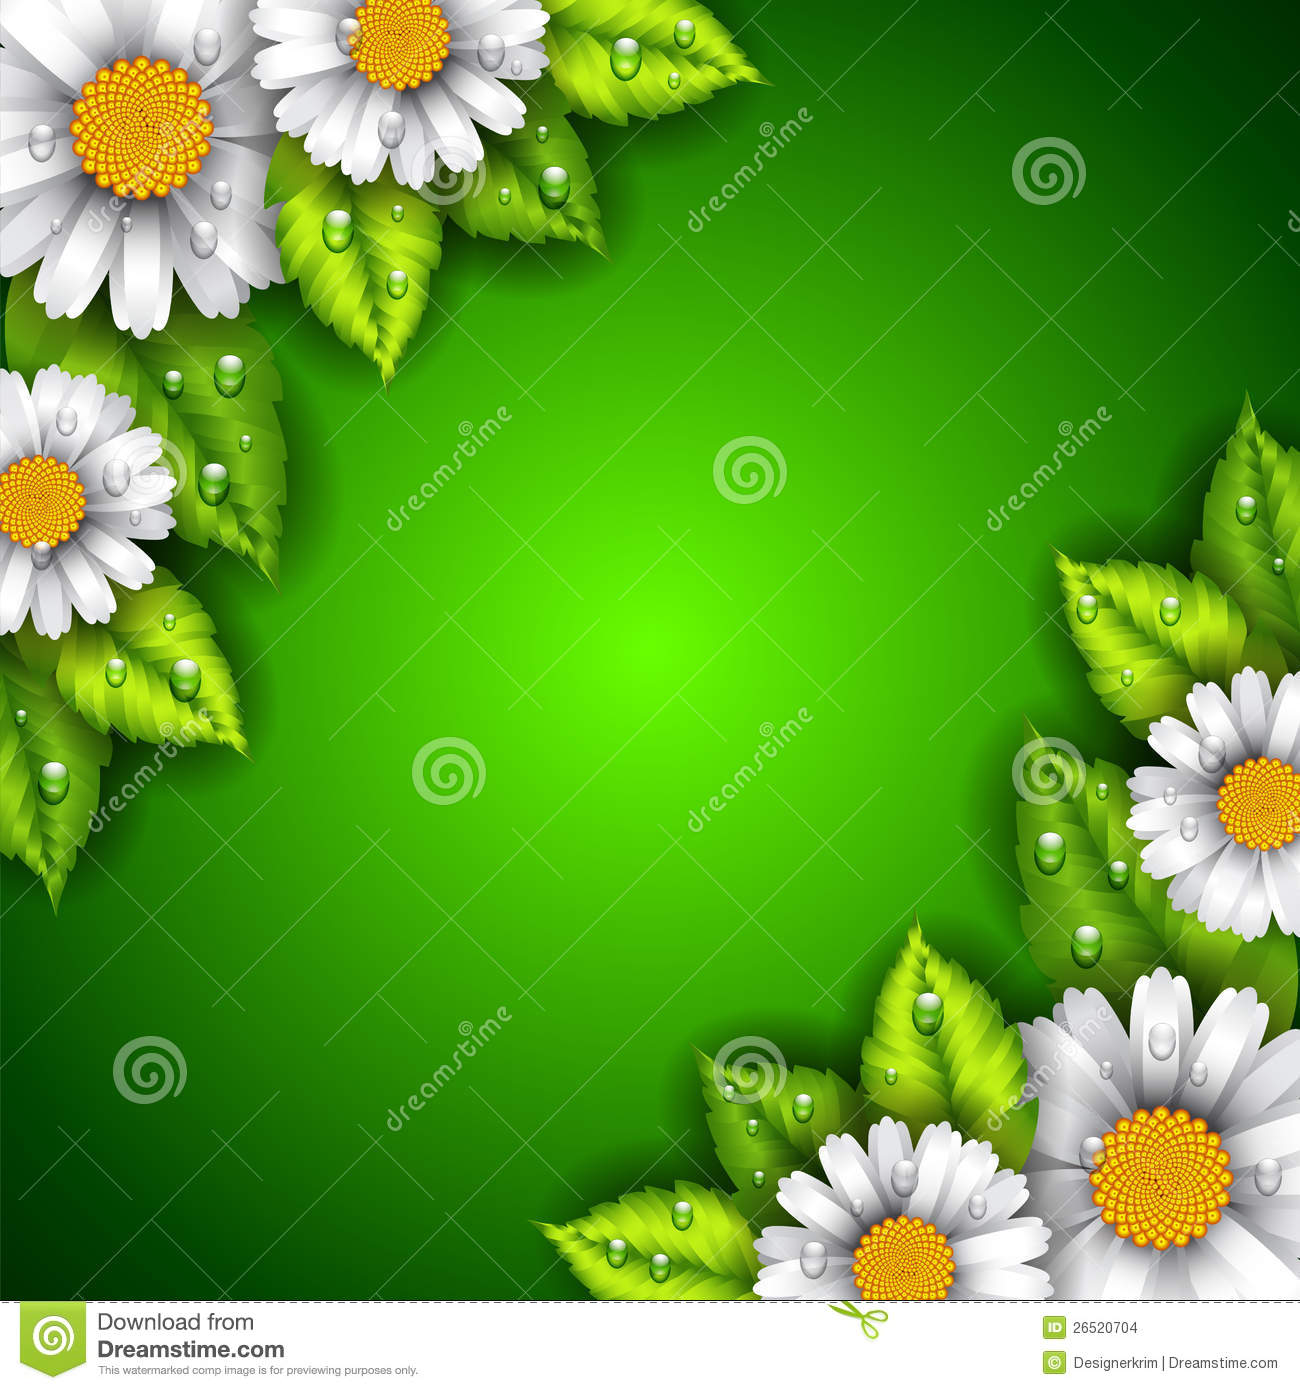 Spring Green Leaves And Flowers Background With Plants: Green Background With Flowers And Leaves Stock Images